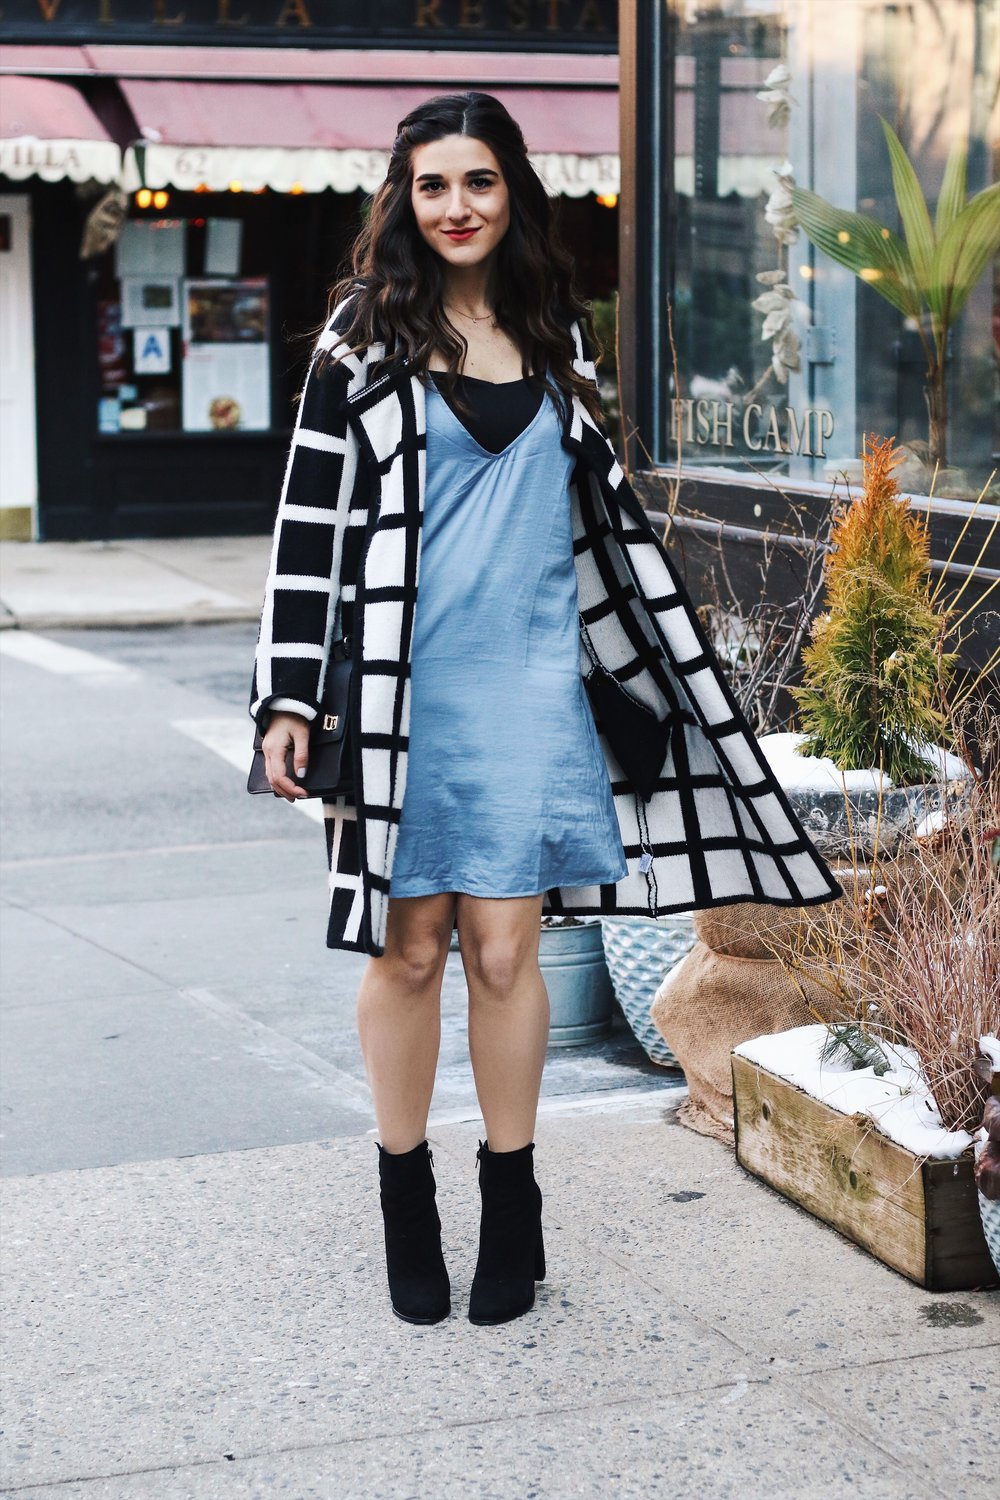 Slip Dress Oversized Cardigan The Job That Got Away Esther Santer Fashion Blog NYC Street Style Blogger Outfit OOTD Trendy Blue Black White Girl Women Bag Purse Henri Bendel Shop Buy Shoes Ankle Boots Winter Inspo Wearing Layers Hair Photoshoot Beauty.JPG